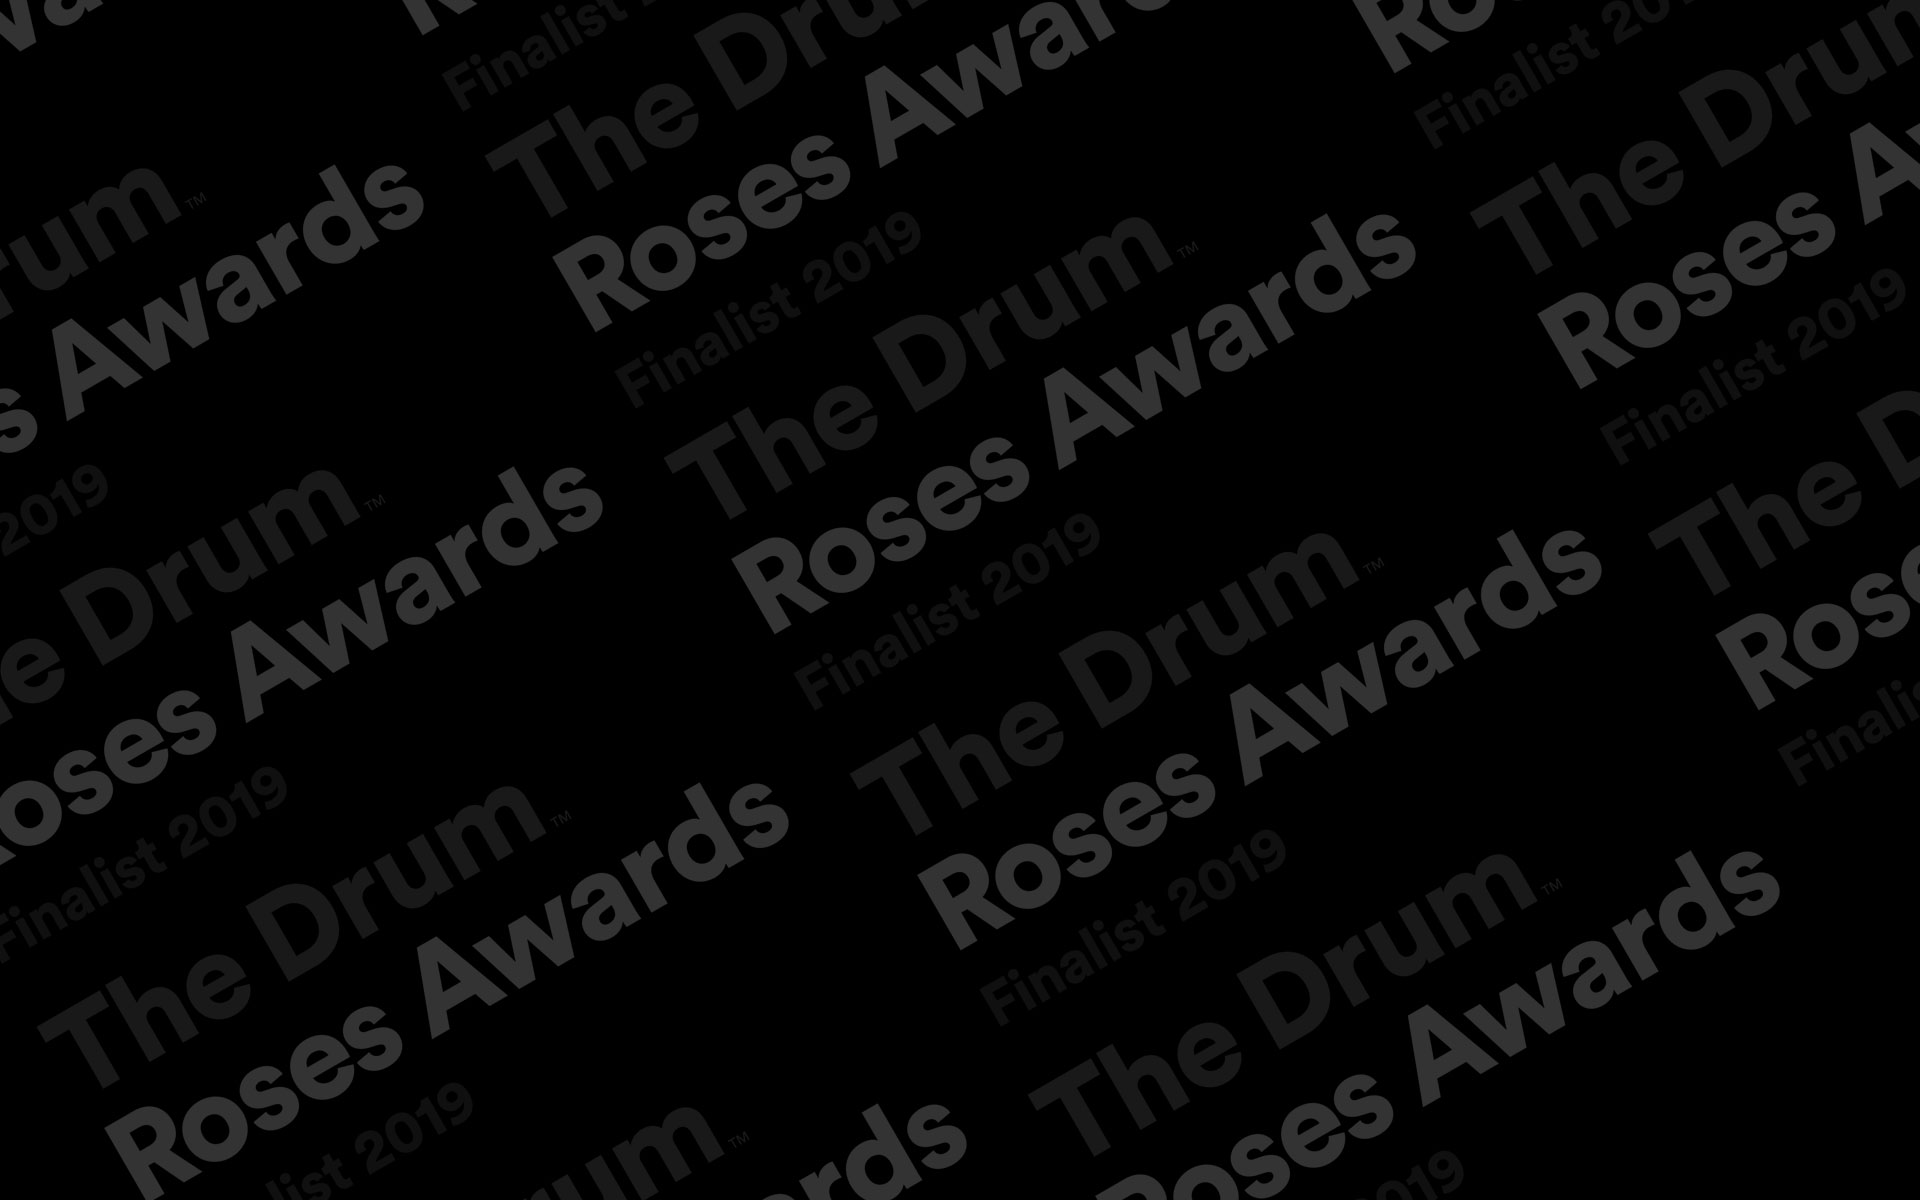 We're nominated finalists in The Drum Roses Awards